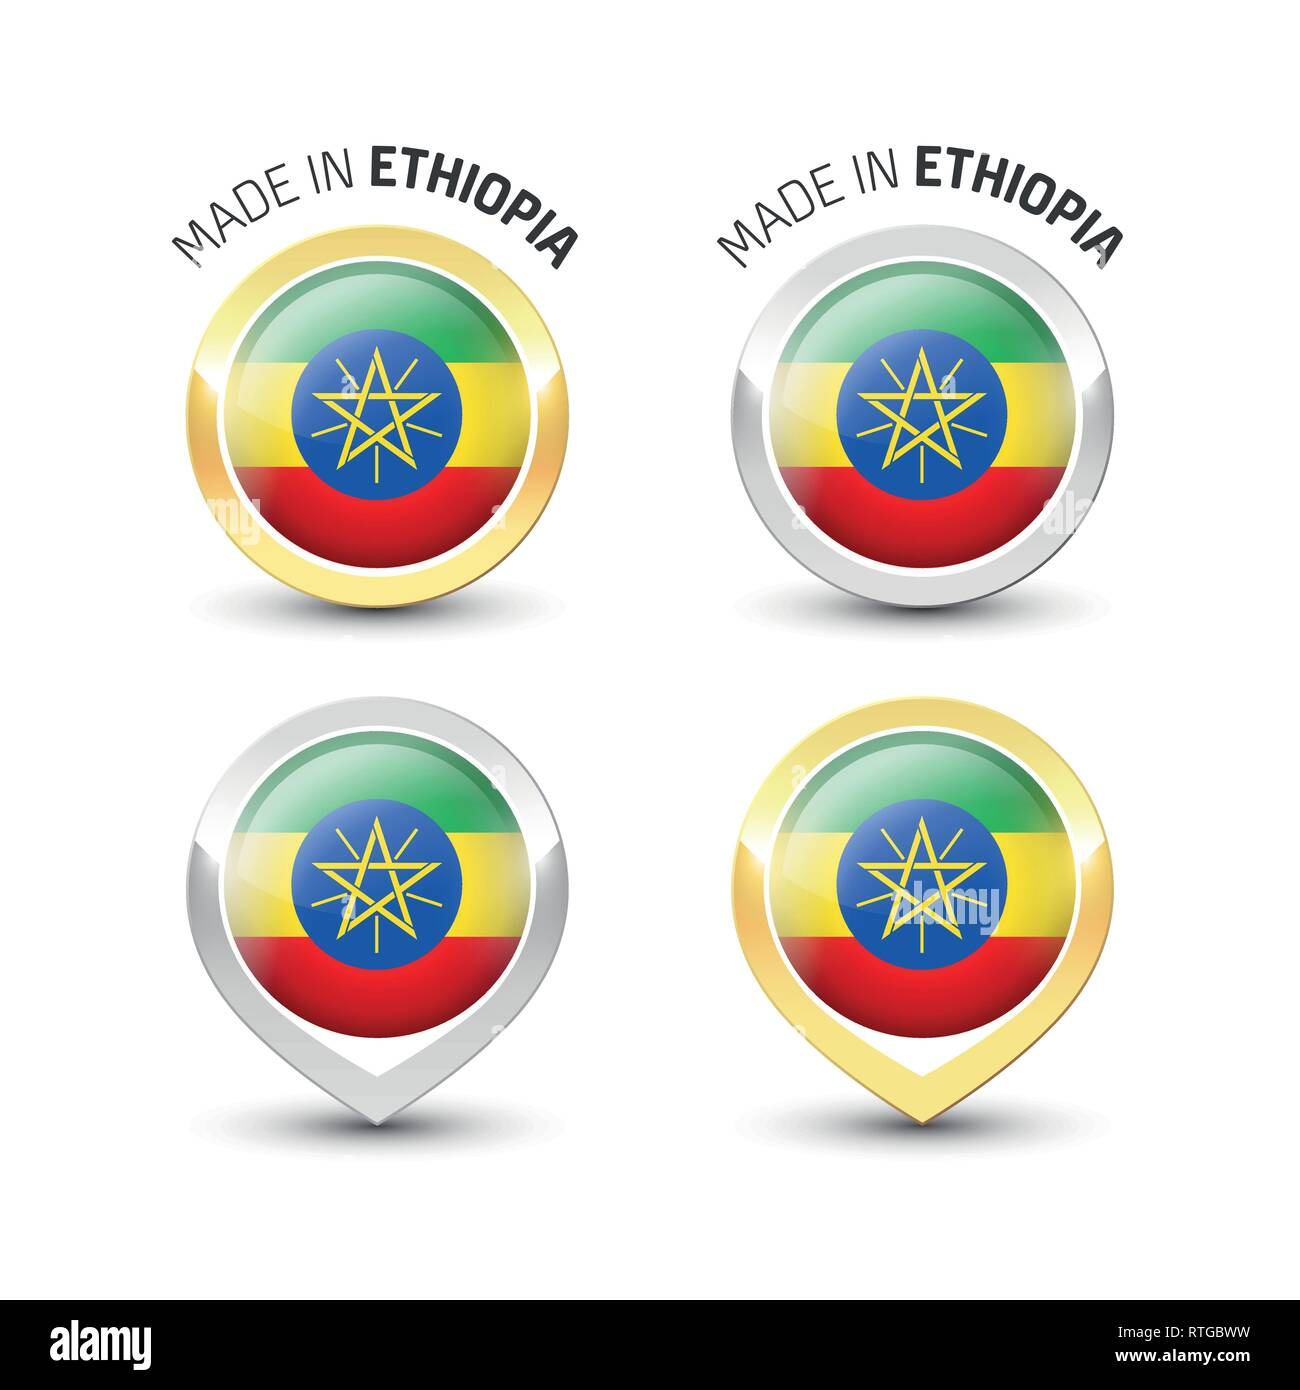 Made in Ethiopia - Guarantee label with the Ethiopian flag inside round gold and silver icons. - Stock Vector